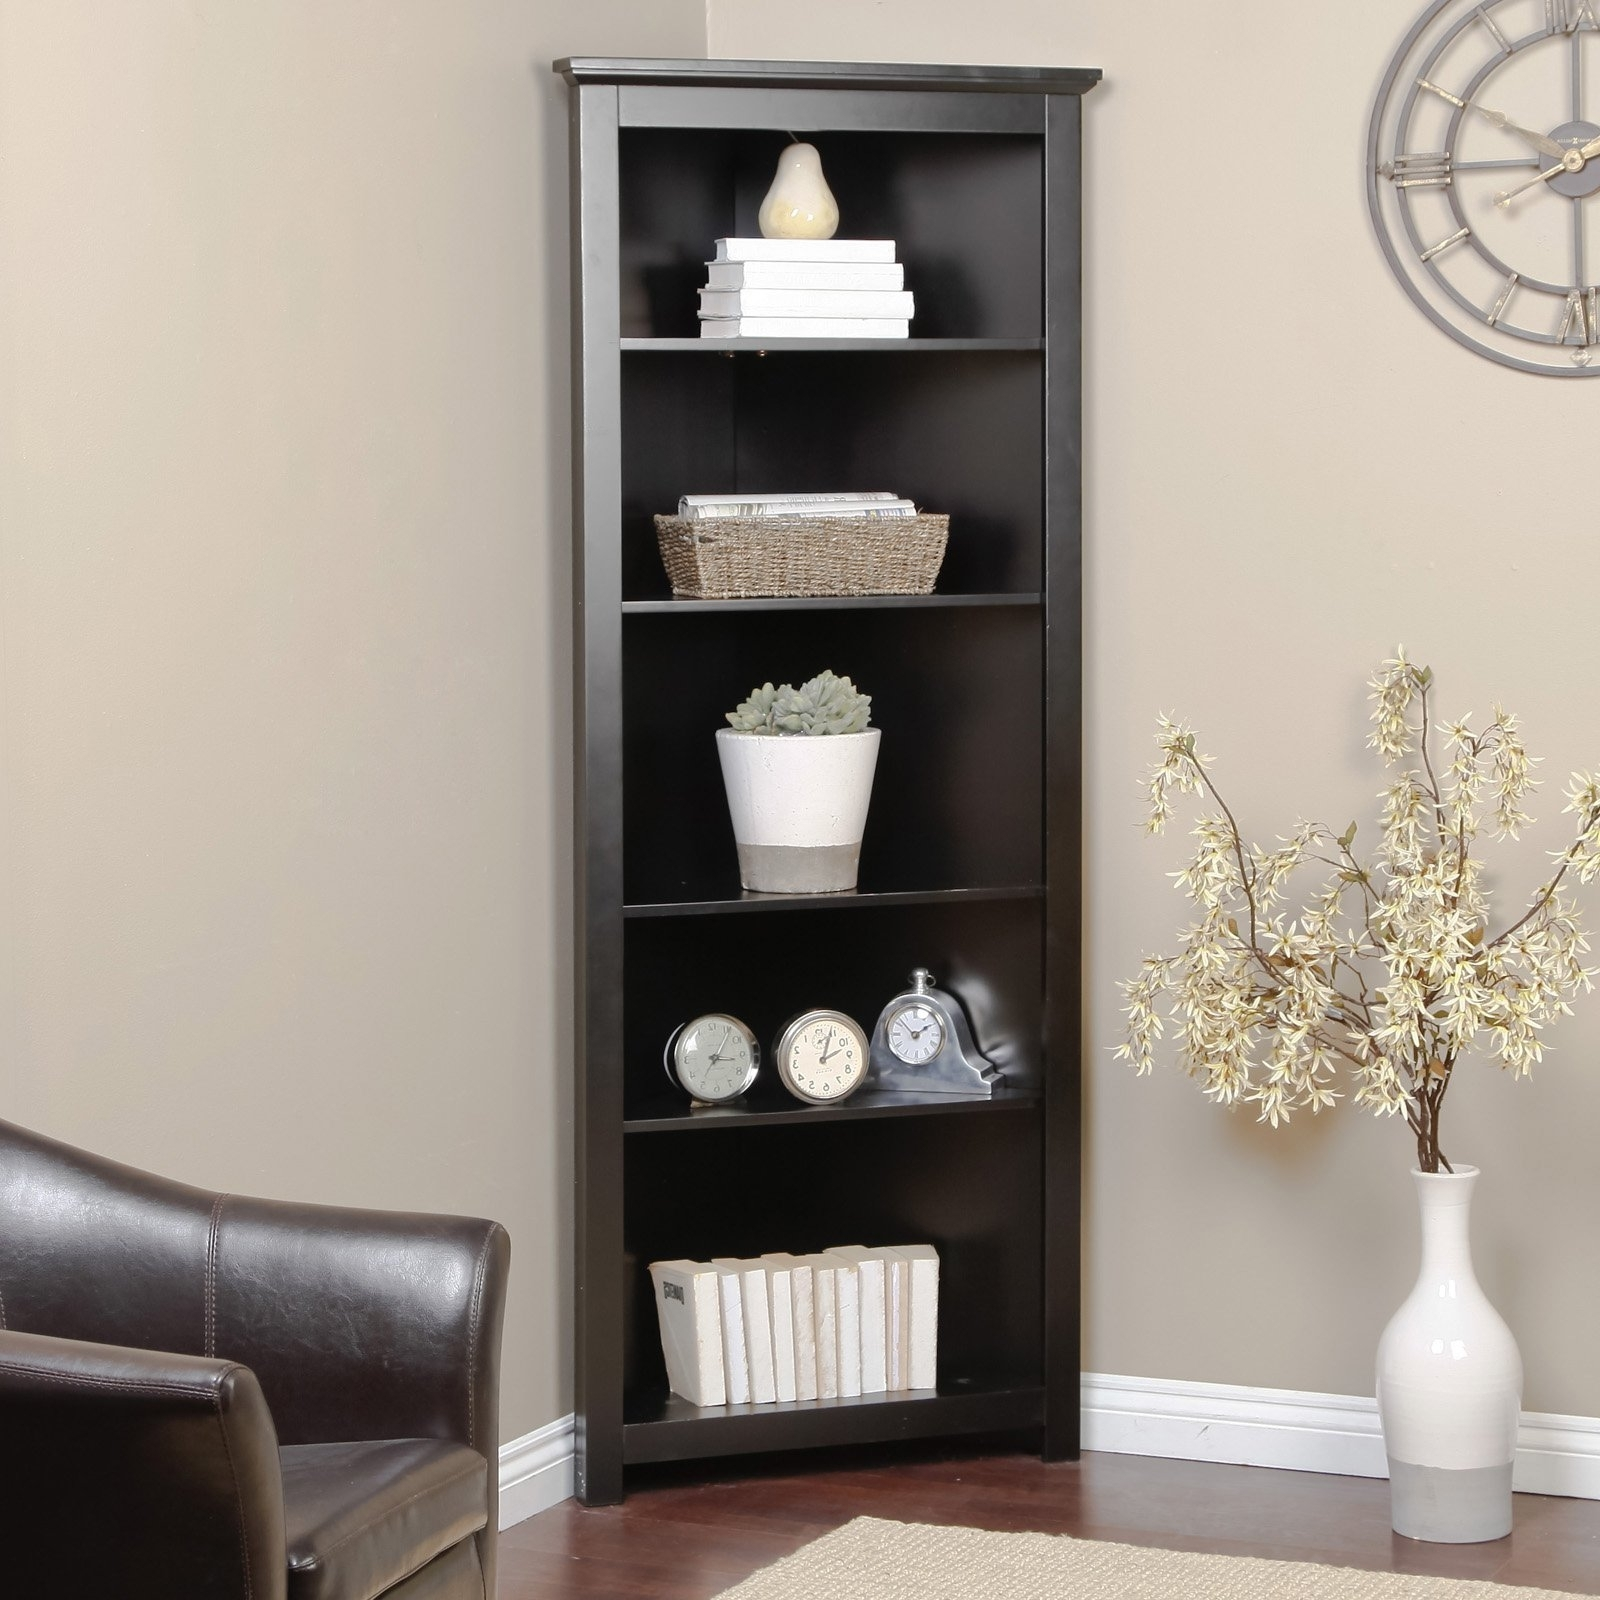 Most Popular The Pros And Cons Of Using A Corner Bookcase – Home Decor Inside Black Corner Bookcases (View 13 of 15)